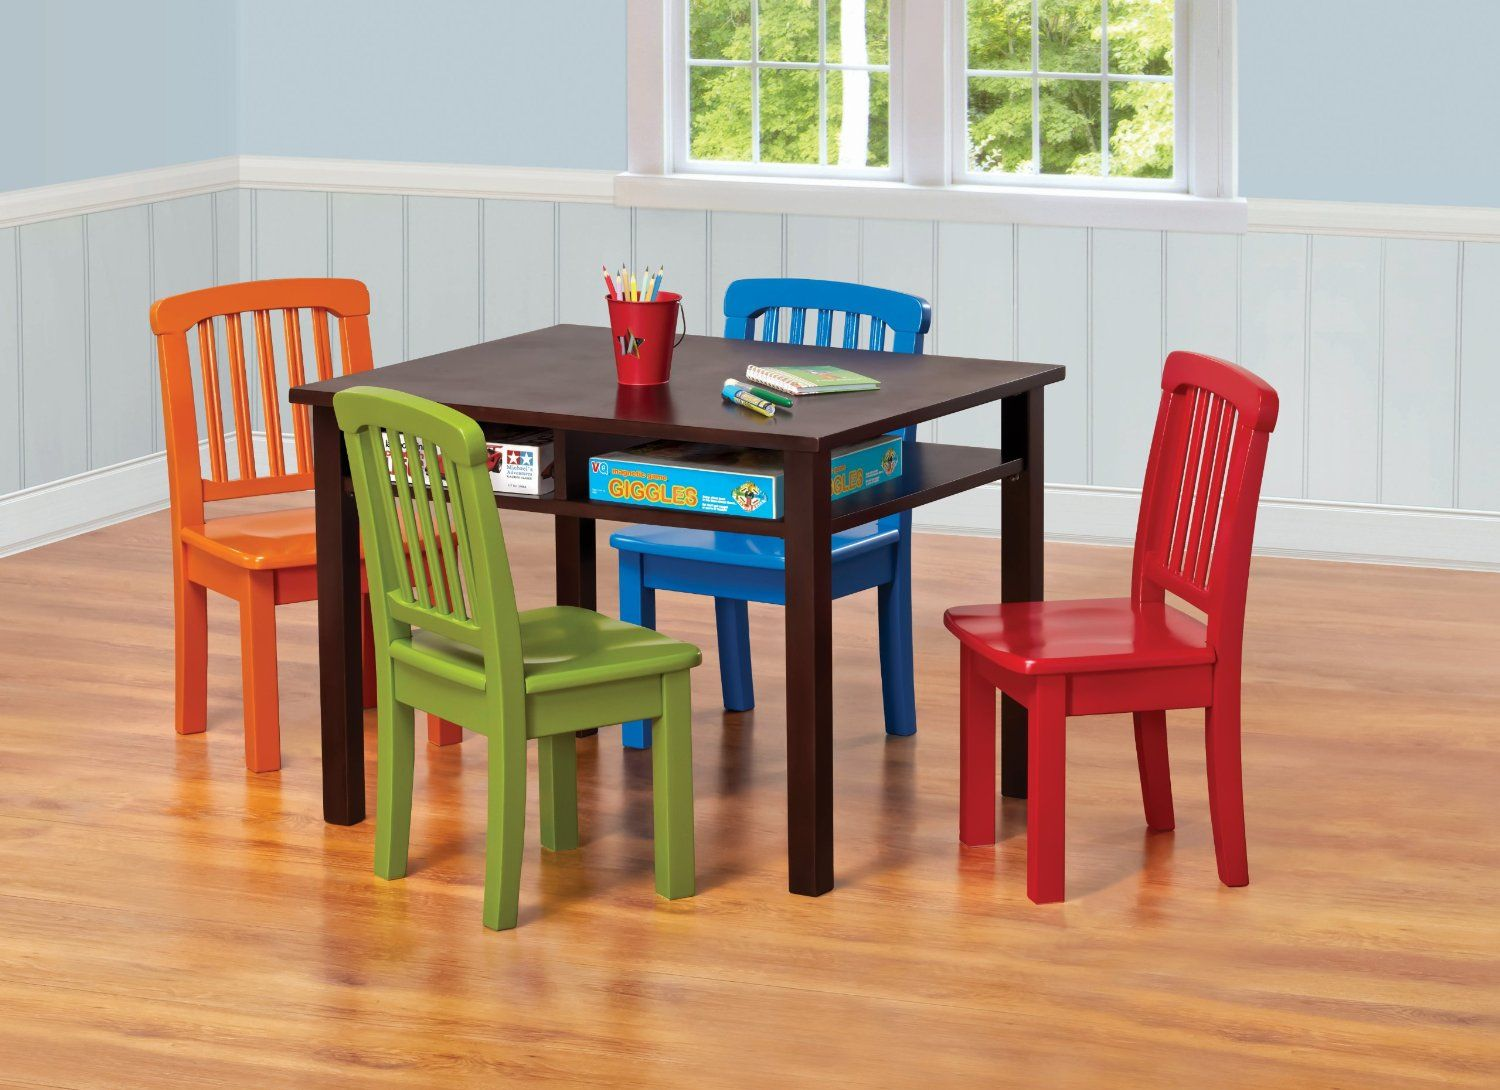 Ukid Rectangle Childrens Game Table with 4 Chairs